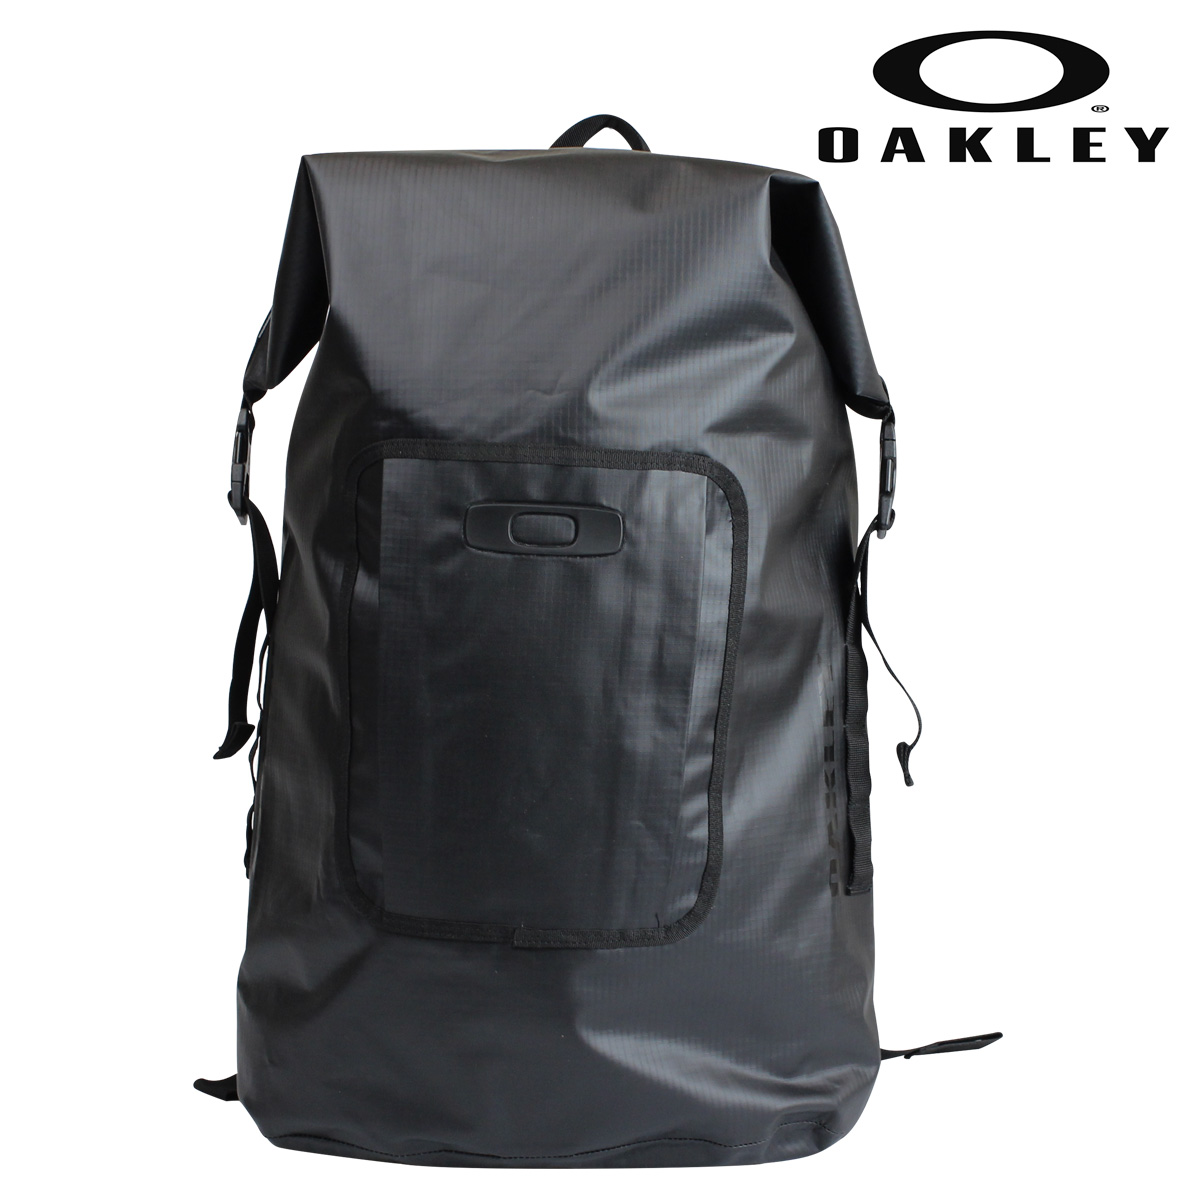 Oakley Oakley mens Backpack Rucksack 92582-01 K BLADE DRY 35 PACK [9/14 new in stock]